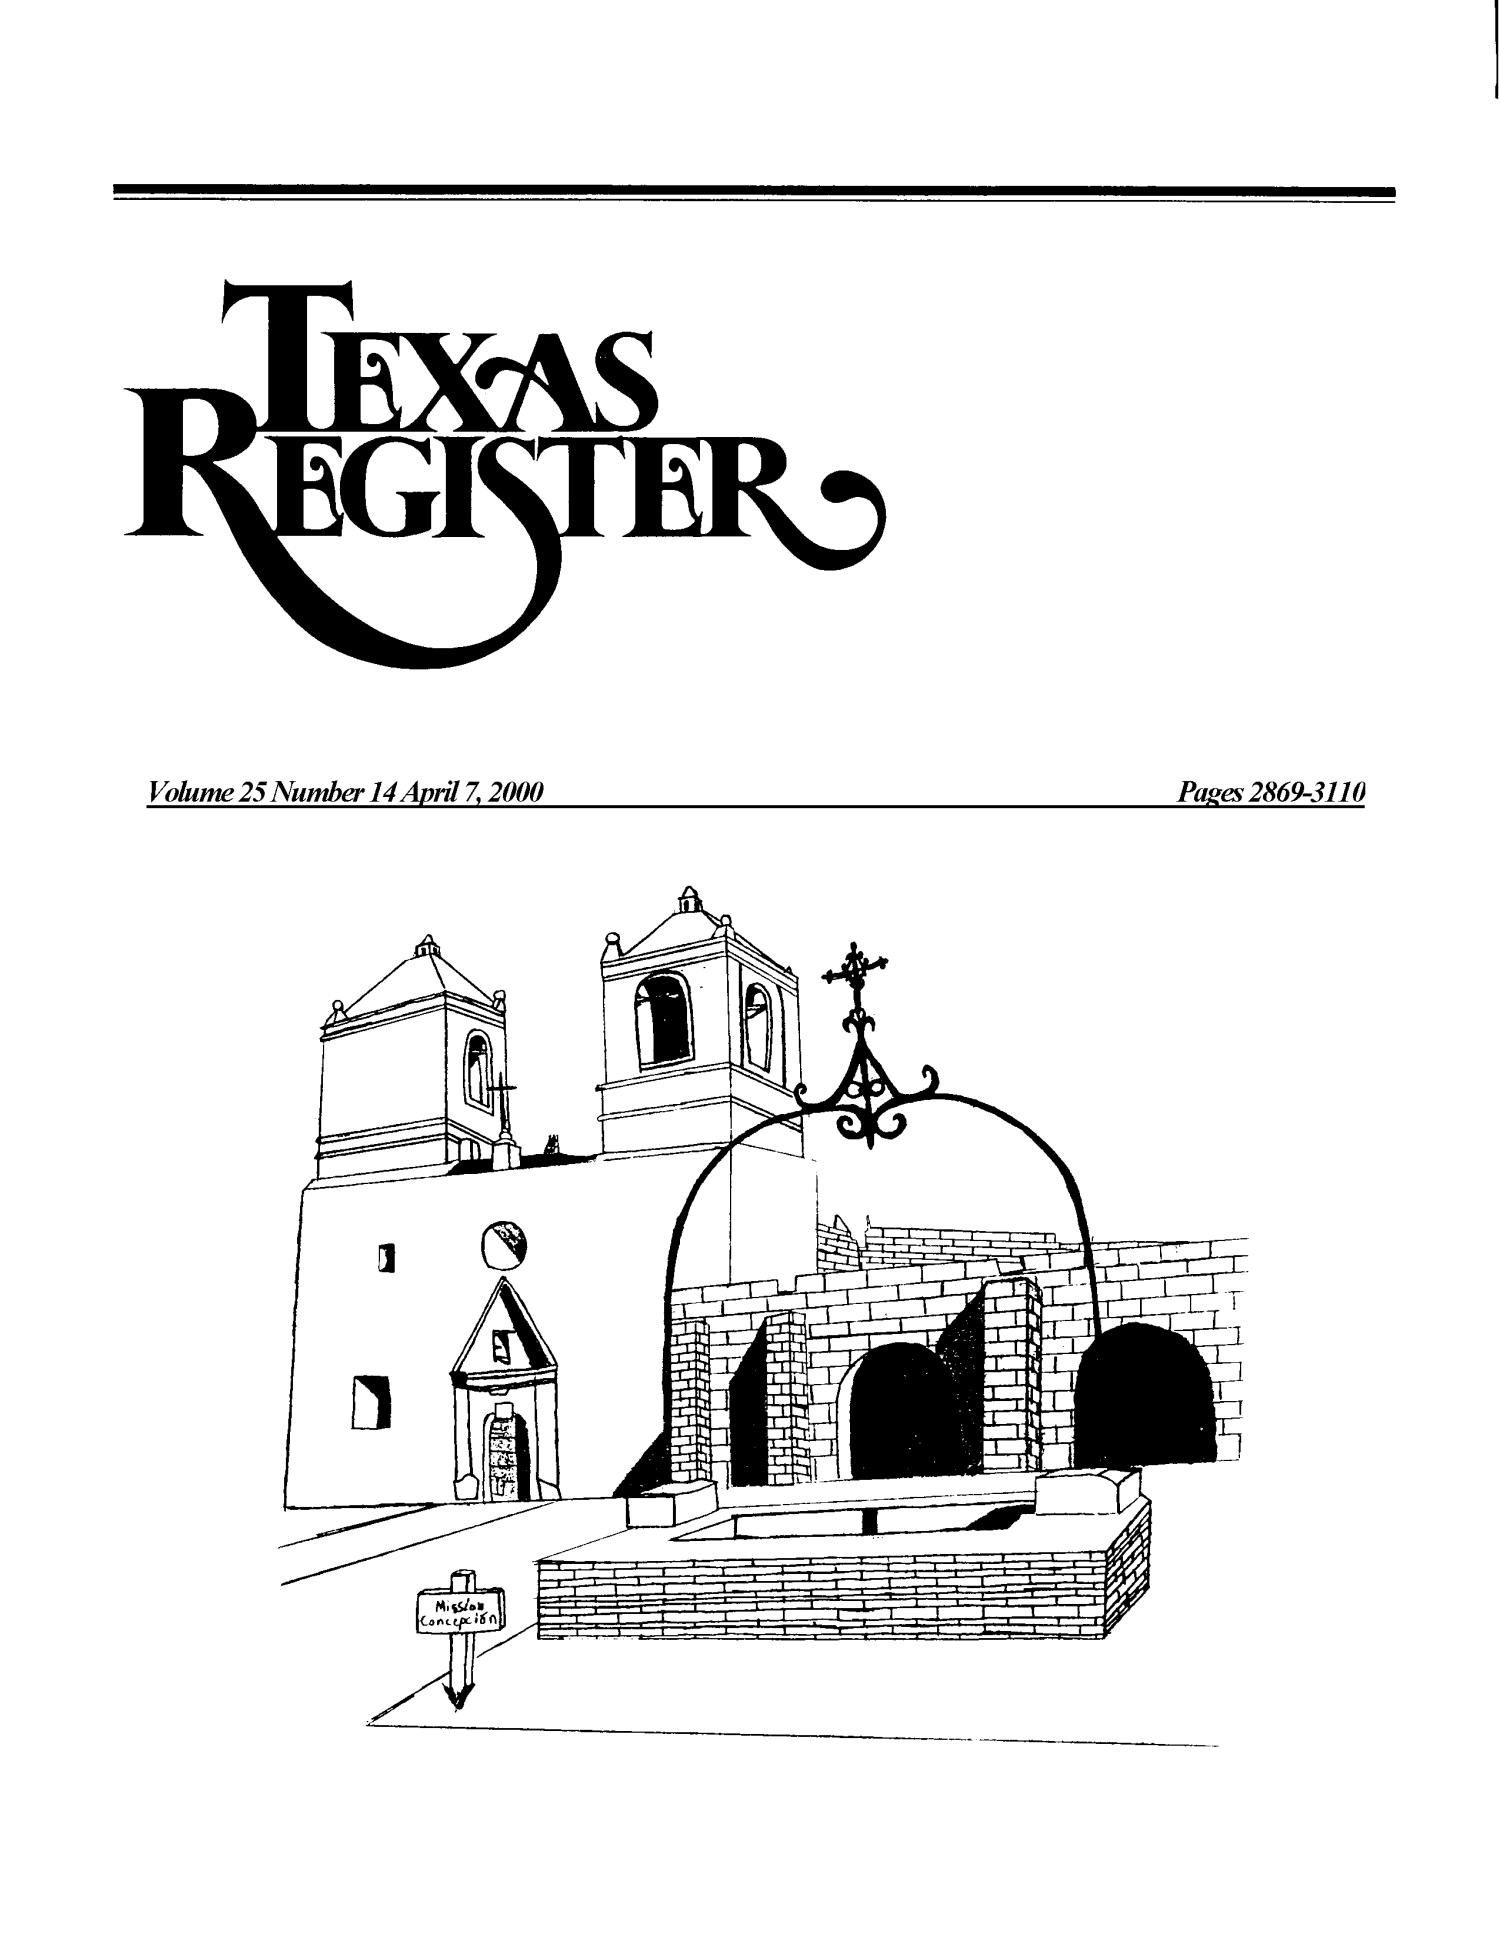 Texas Register, Volume 25, Number 14, Pages 2869-3110